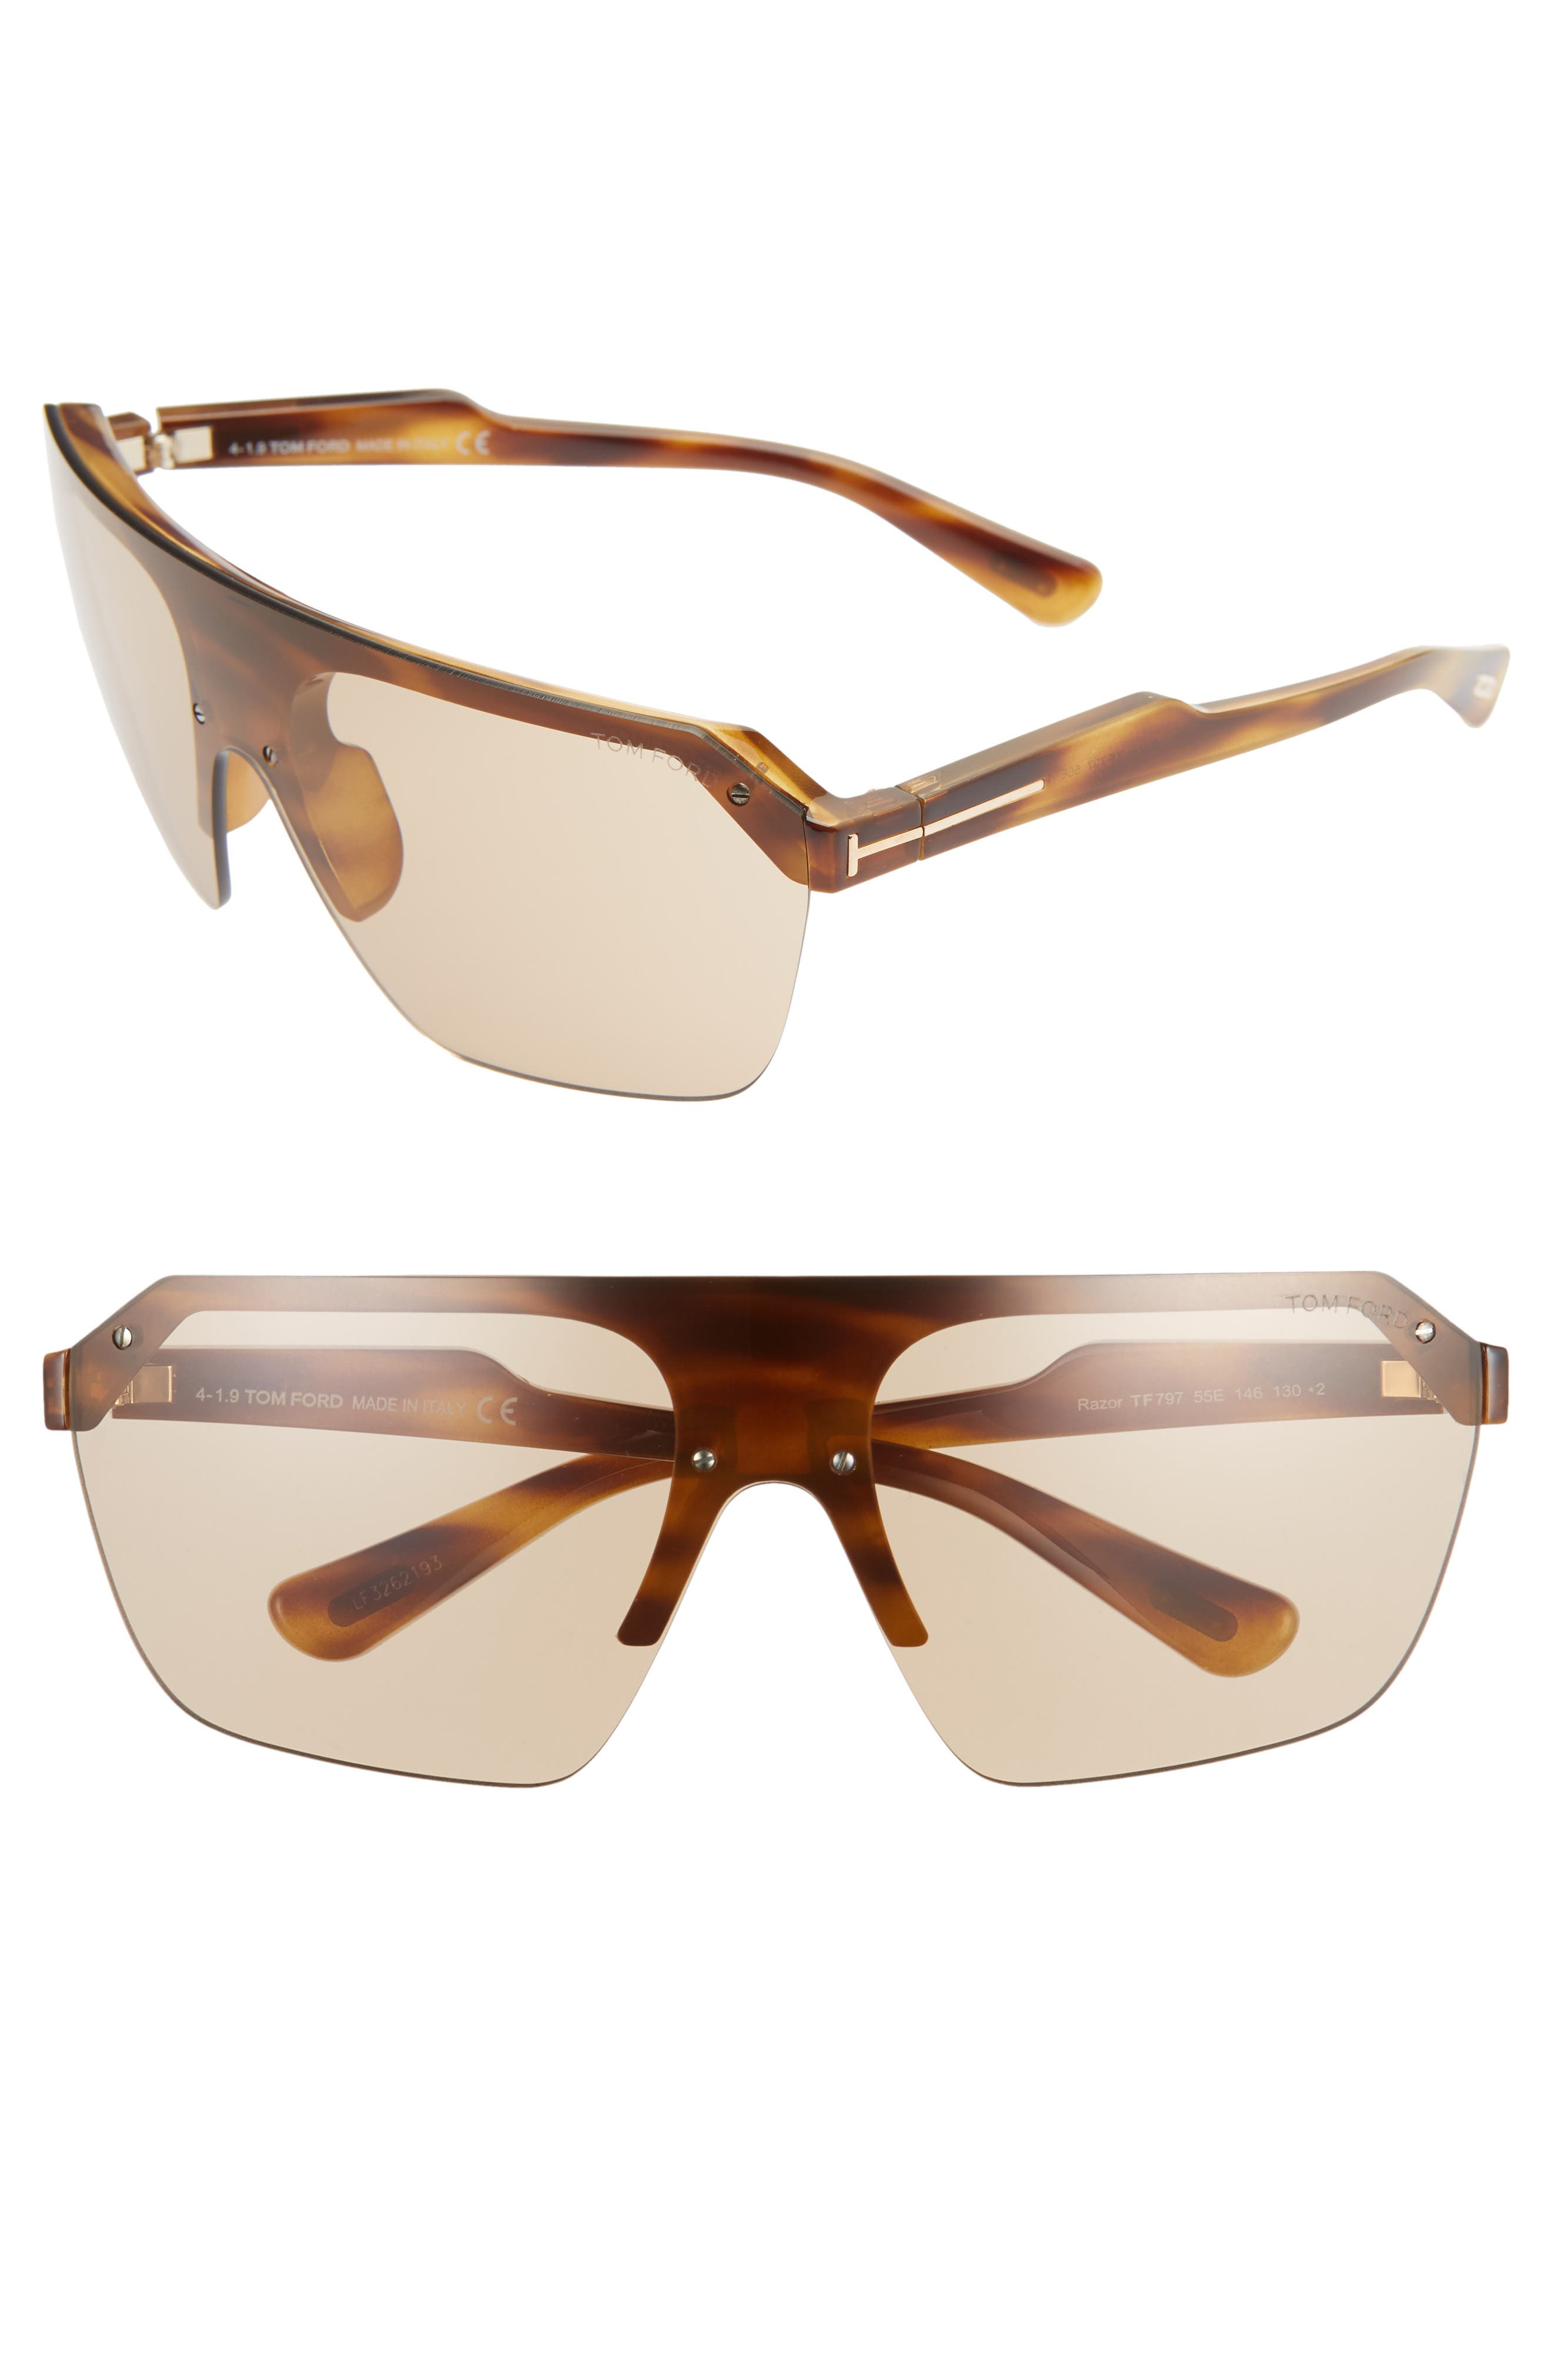 Image of Tom Ford Razor 155mm Shield Sunglasses